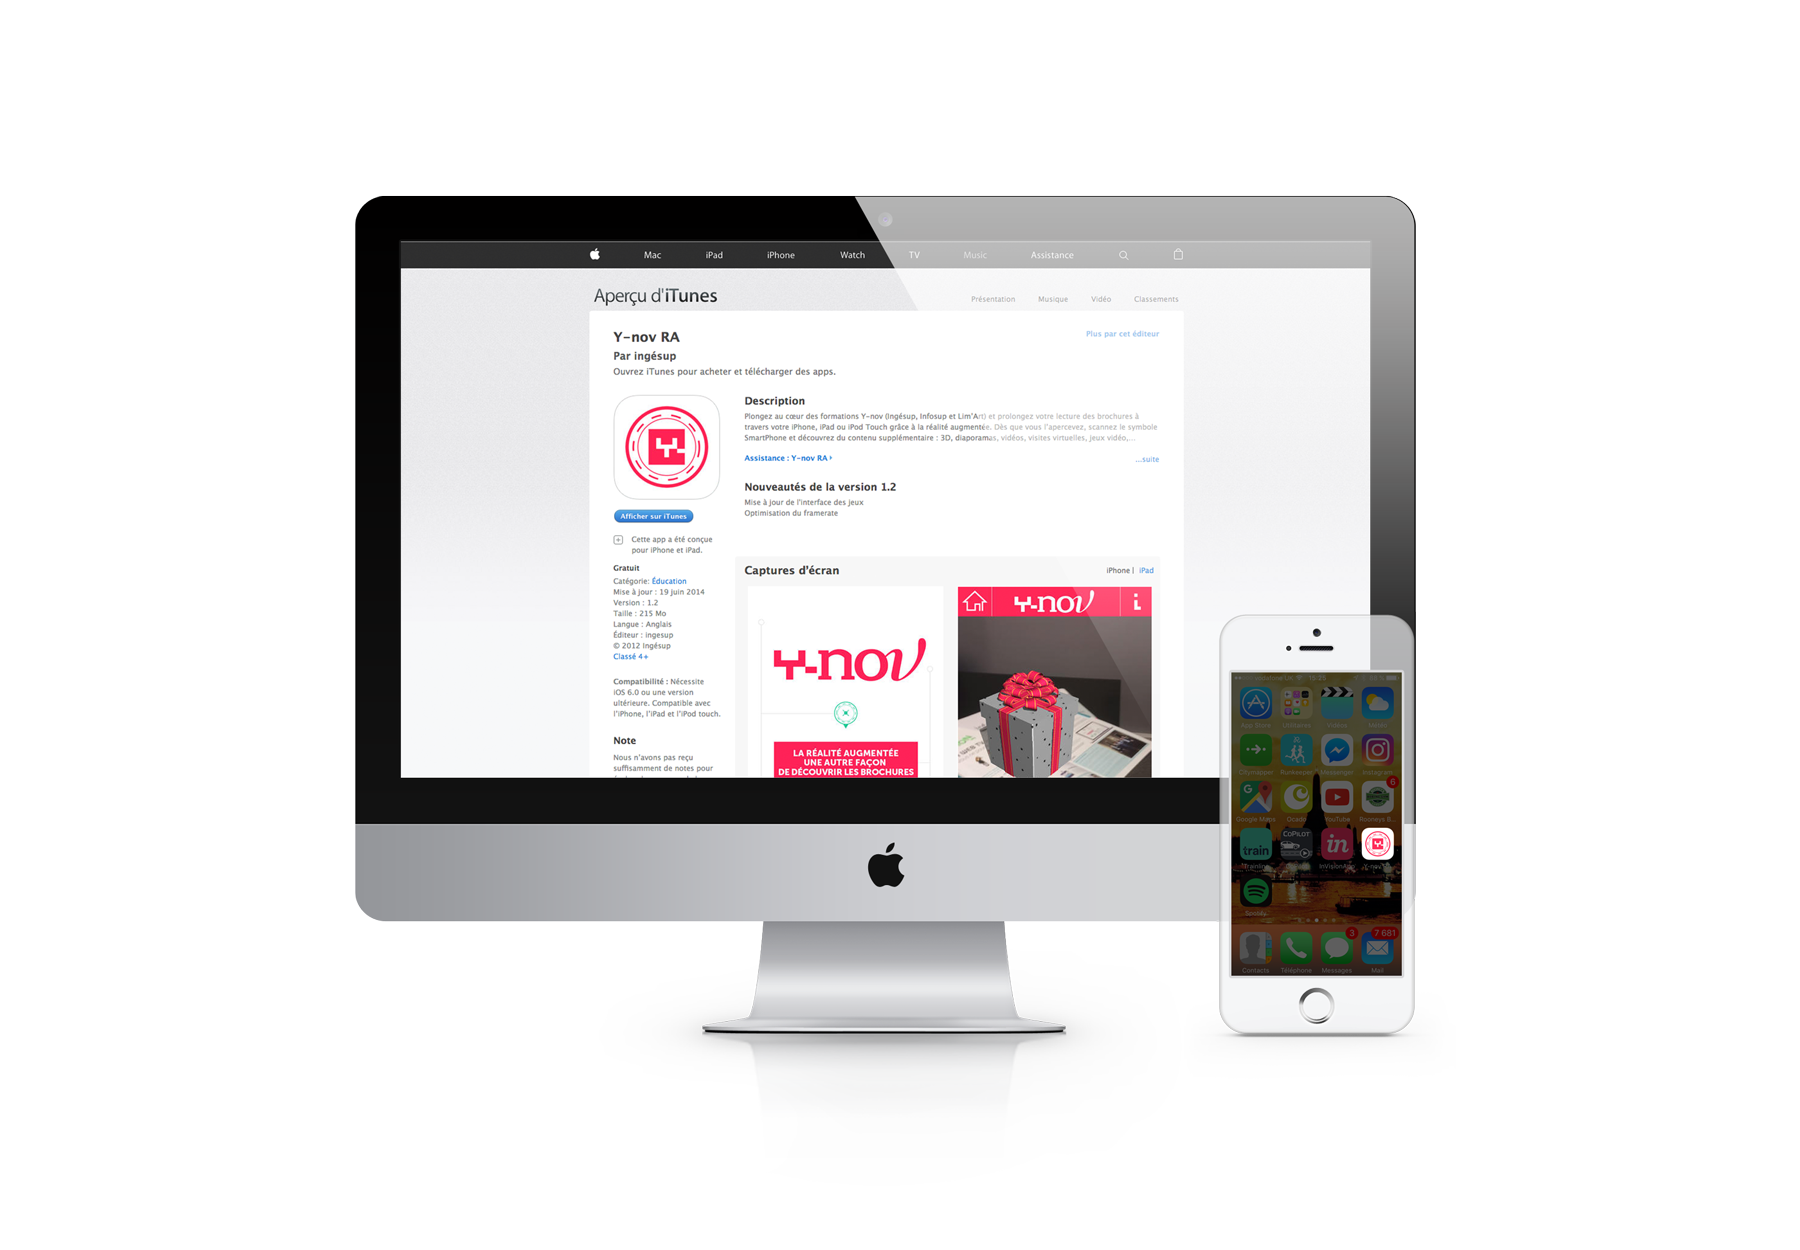 Y-nov RA, virtual reality, screen App Store